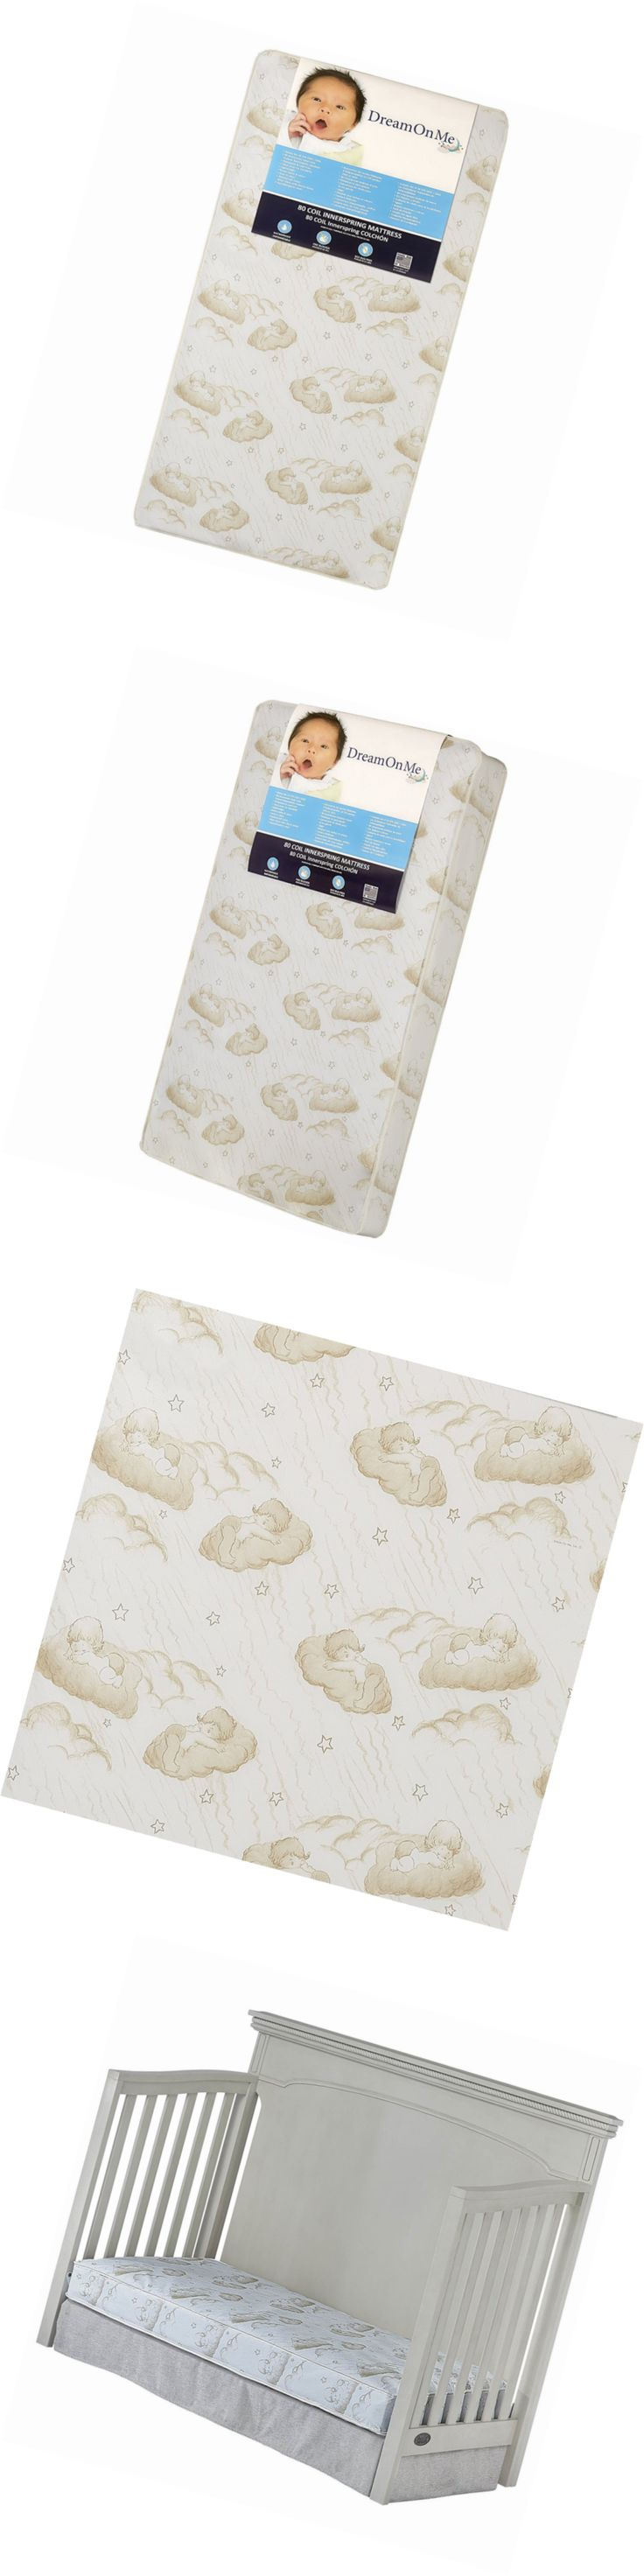 Crib Mattresses 117035: Dream On Me Spring Crib And Toddler Bed Mattress, Twilight -> BUY IT NOW ONLY: $44.99 on eBay!